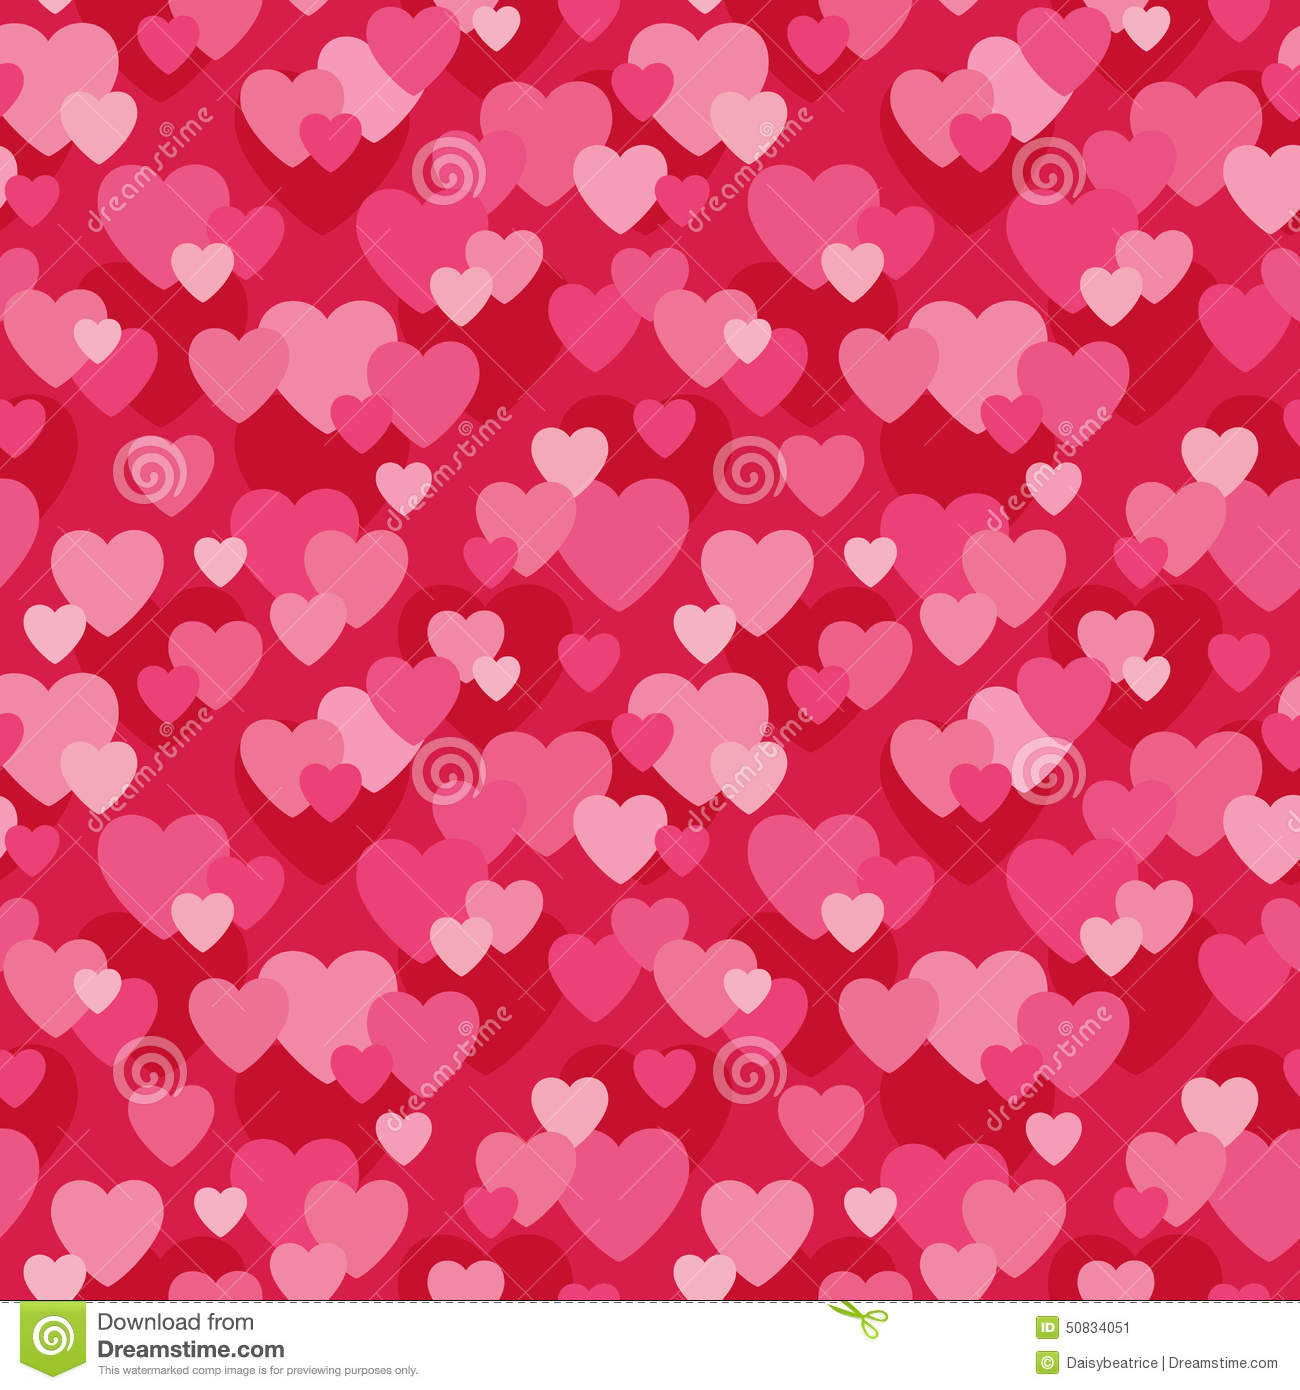 Seamless Love Hearts Background In Pink And Red Stock ...